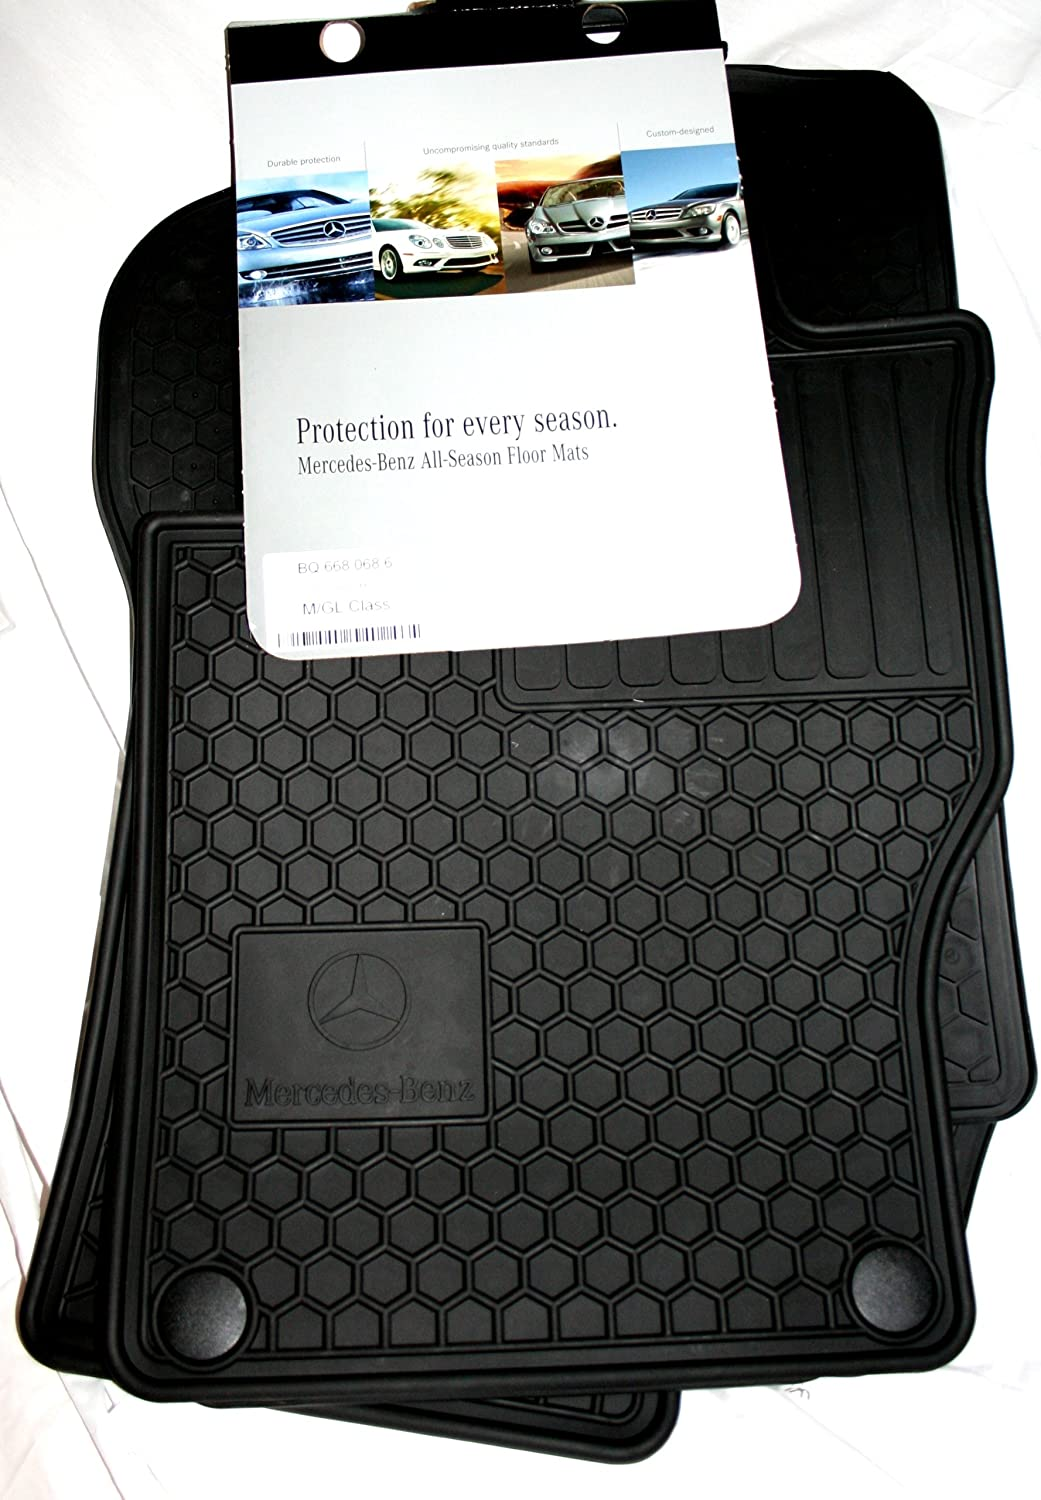 Genuine Mercedes Benz Q6680686 Rubber Floor Mats Ml350 2005 Parts Automotive